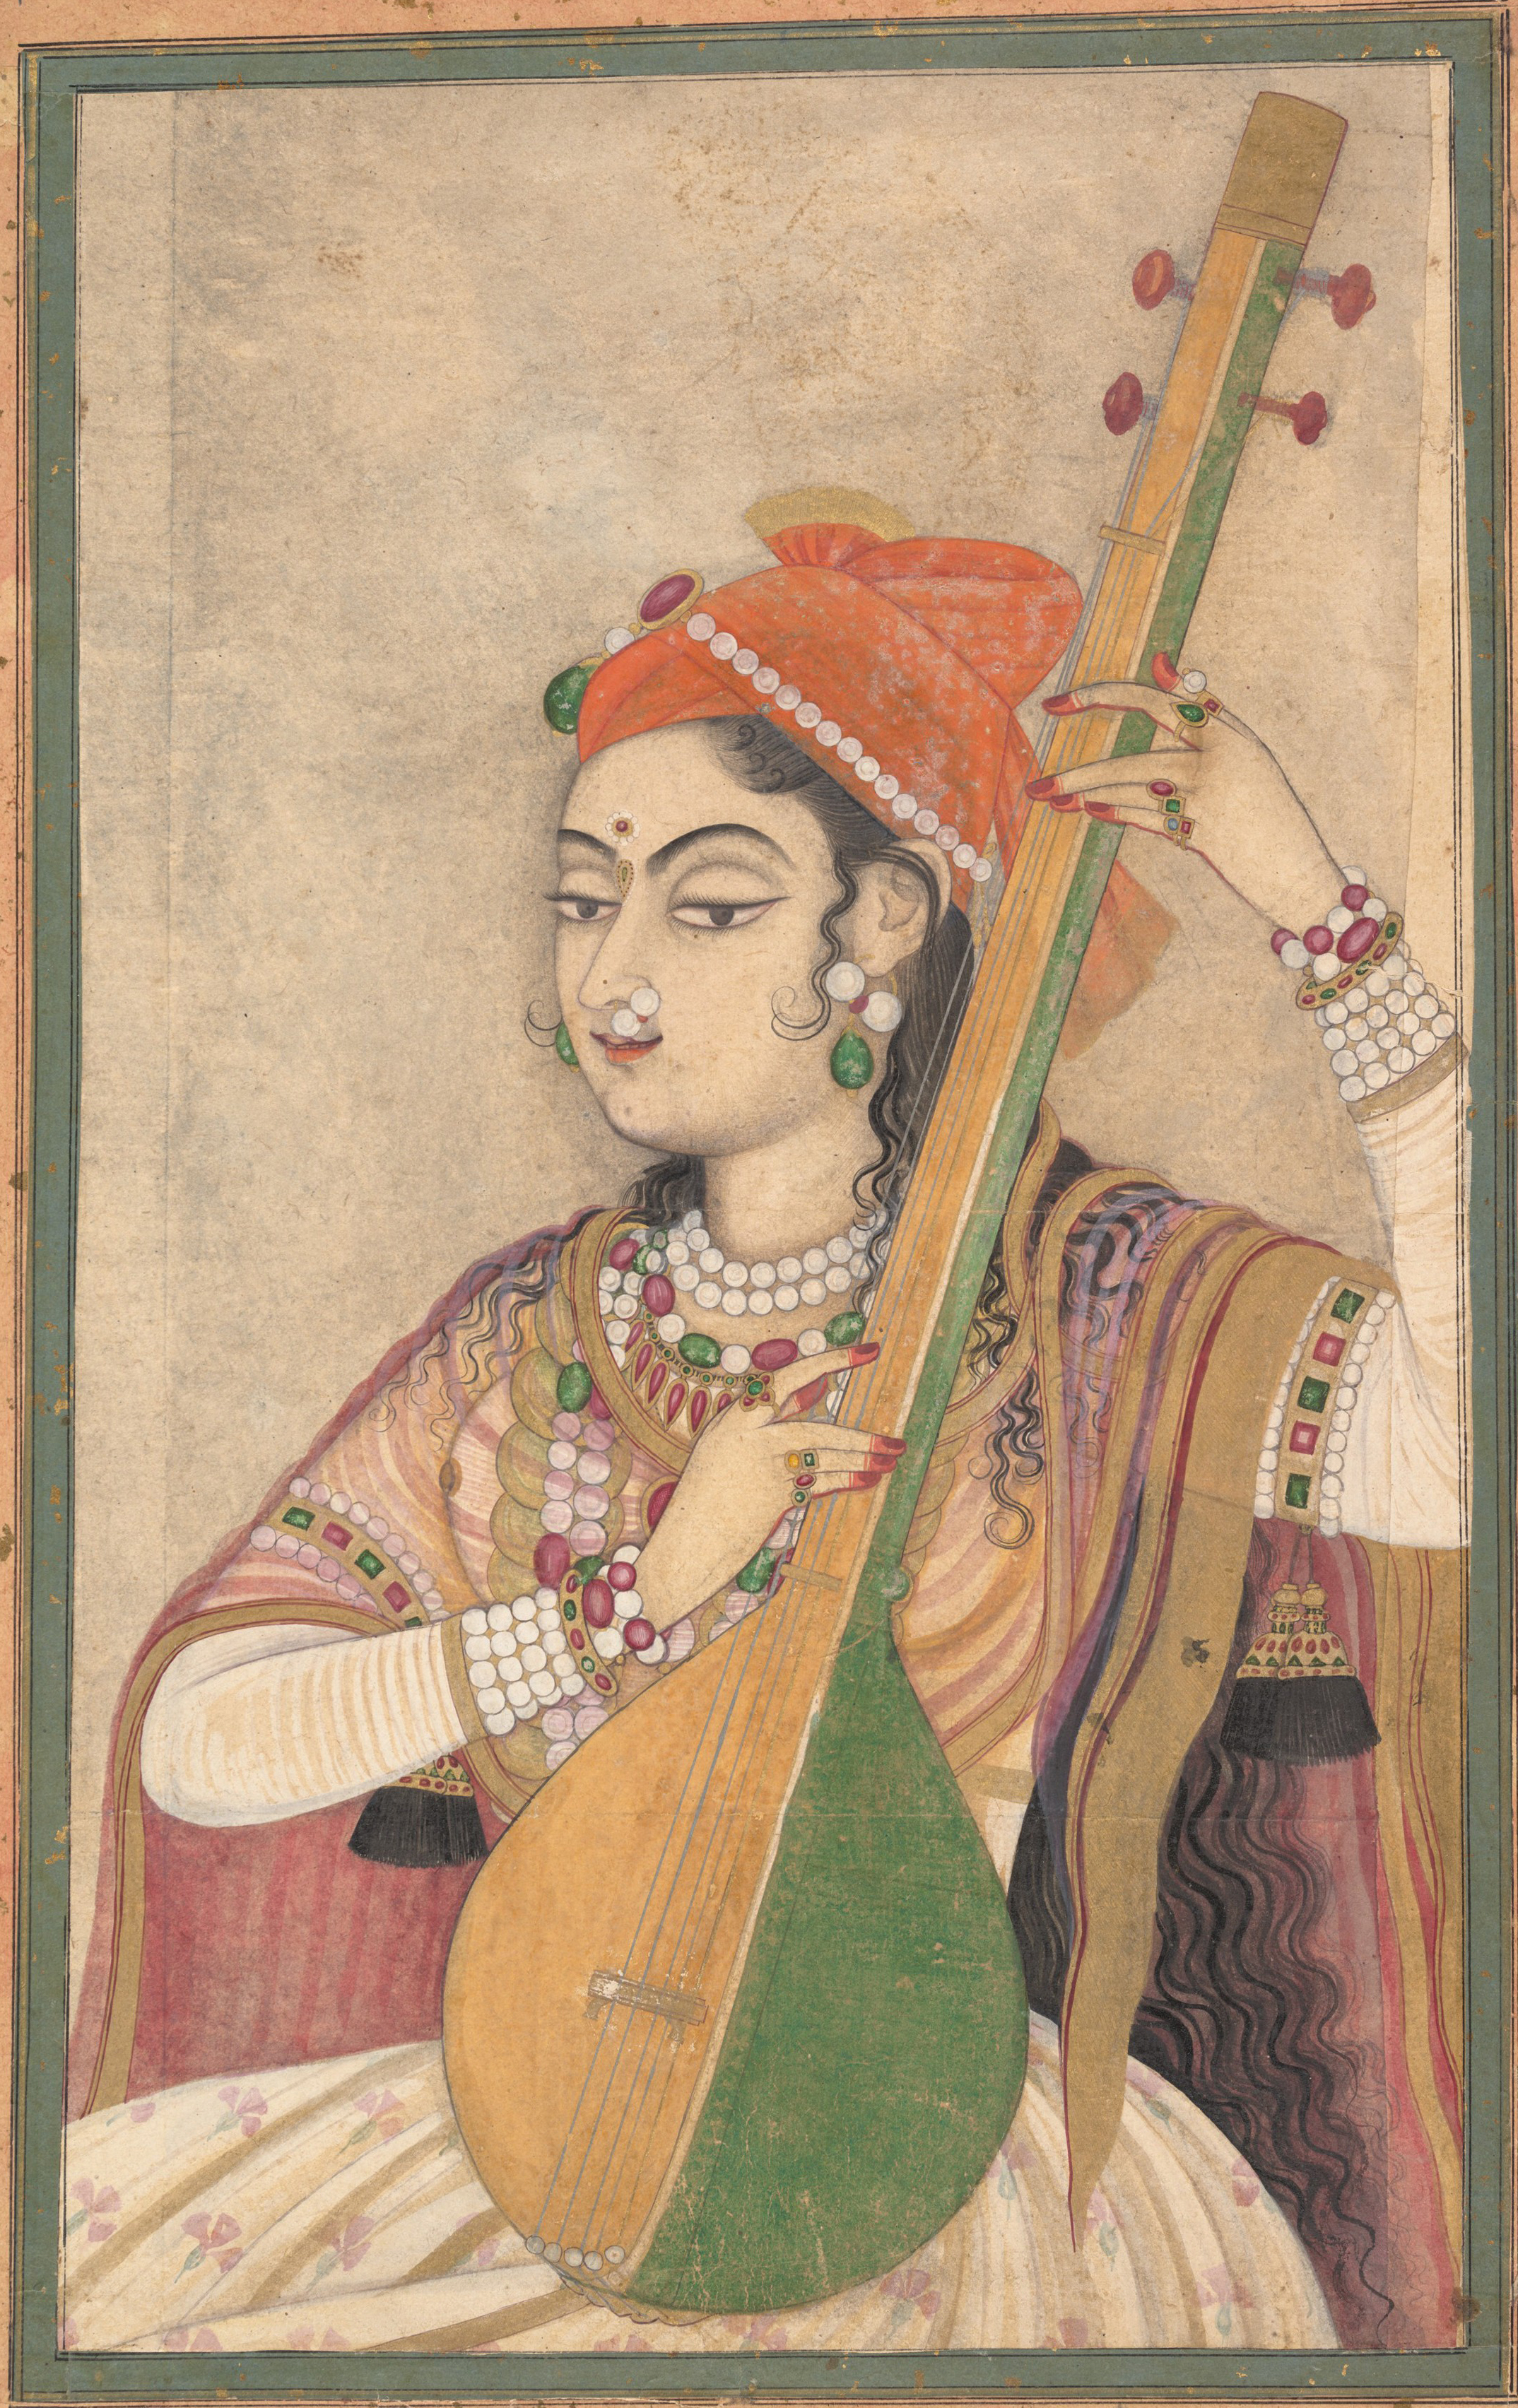 http://upload.wikimedia.org/wikipedia/commons/1/13/A_Lady_Playing_the_Tanpura,_ca._1735.jpg